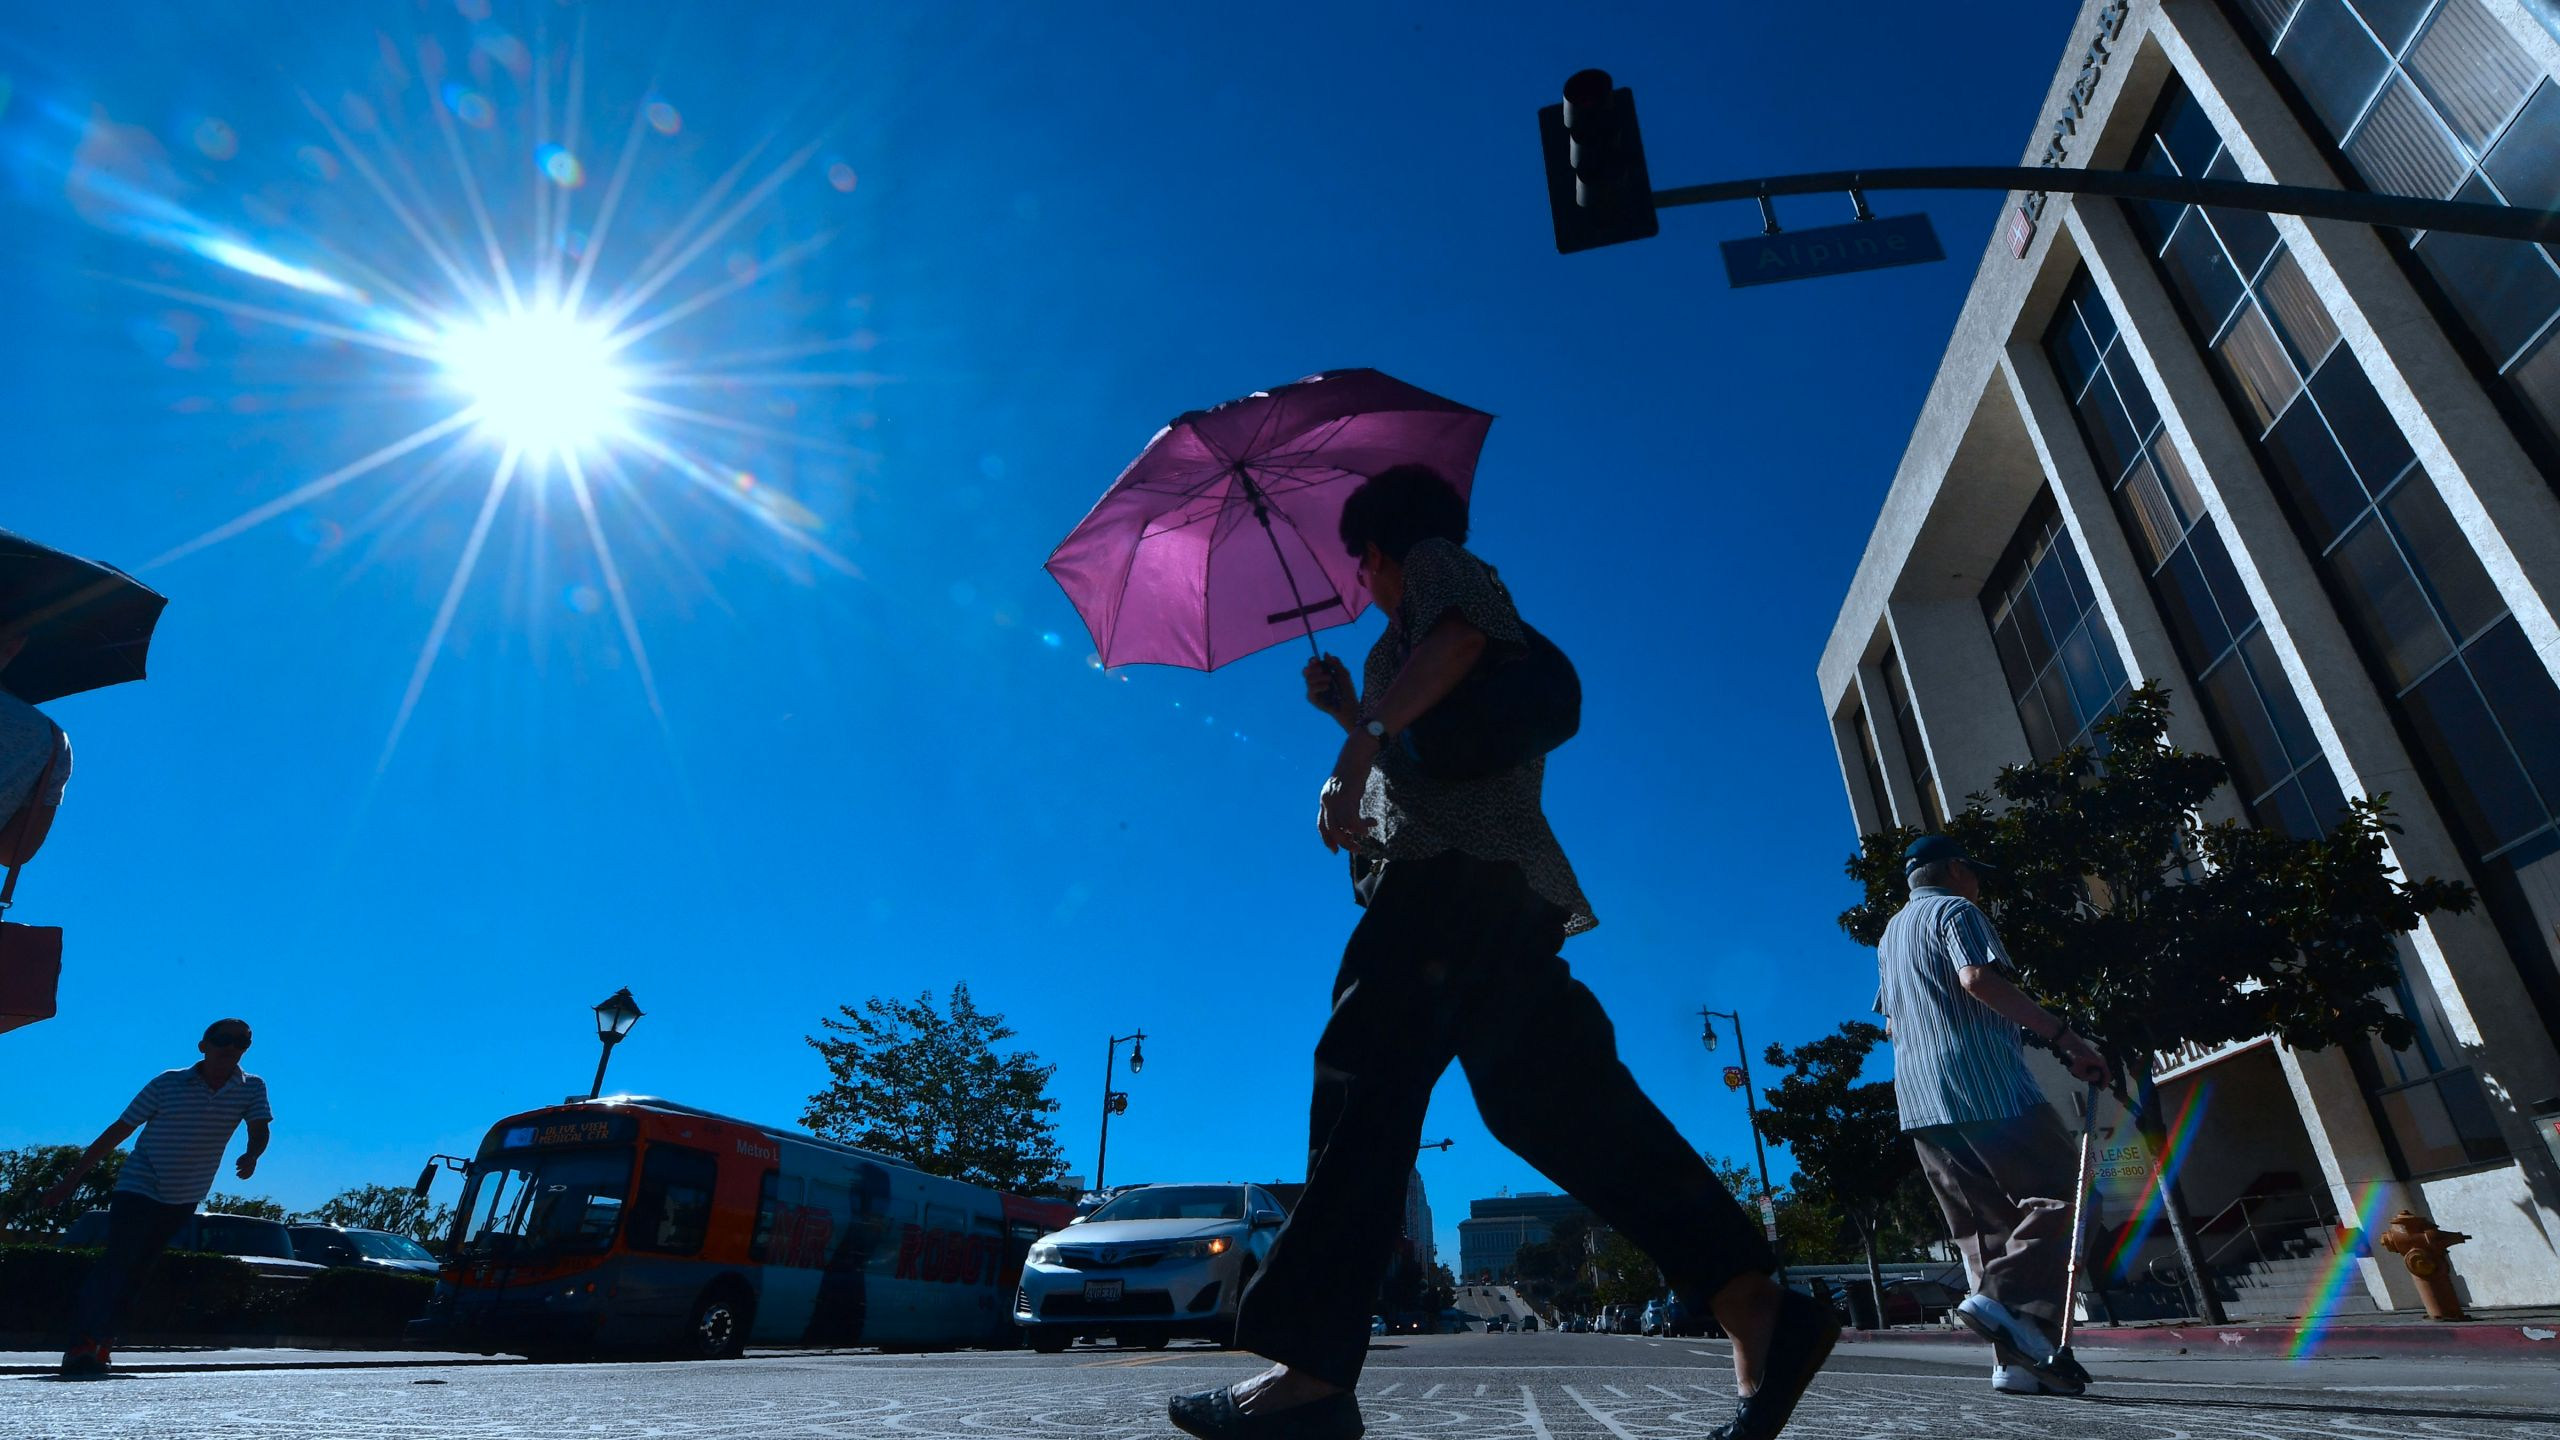 A pedestrian uses an umbrella on a hot sunny morning in Los Angeles Oct. 24, 2017, amid a late season heatwave hitting Southern California. (Credit: FREDERIC J. BROWN/AFP/Getty Images)